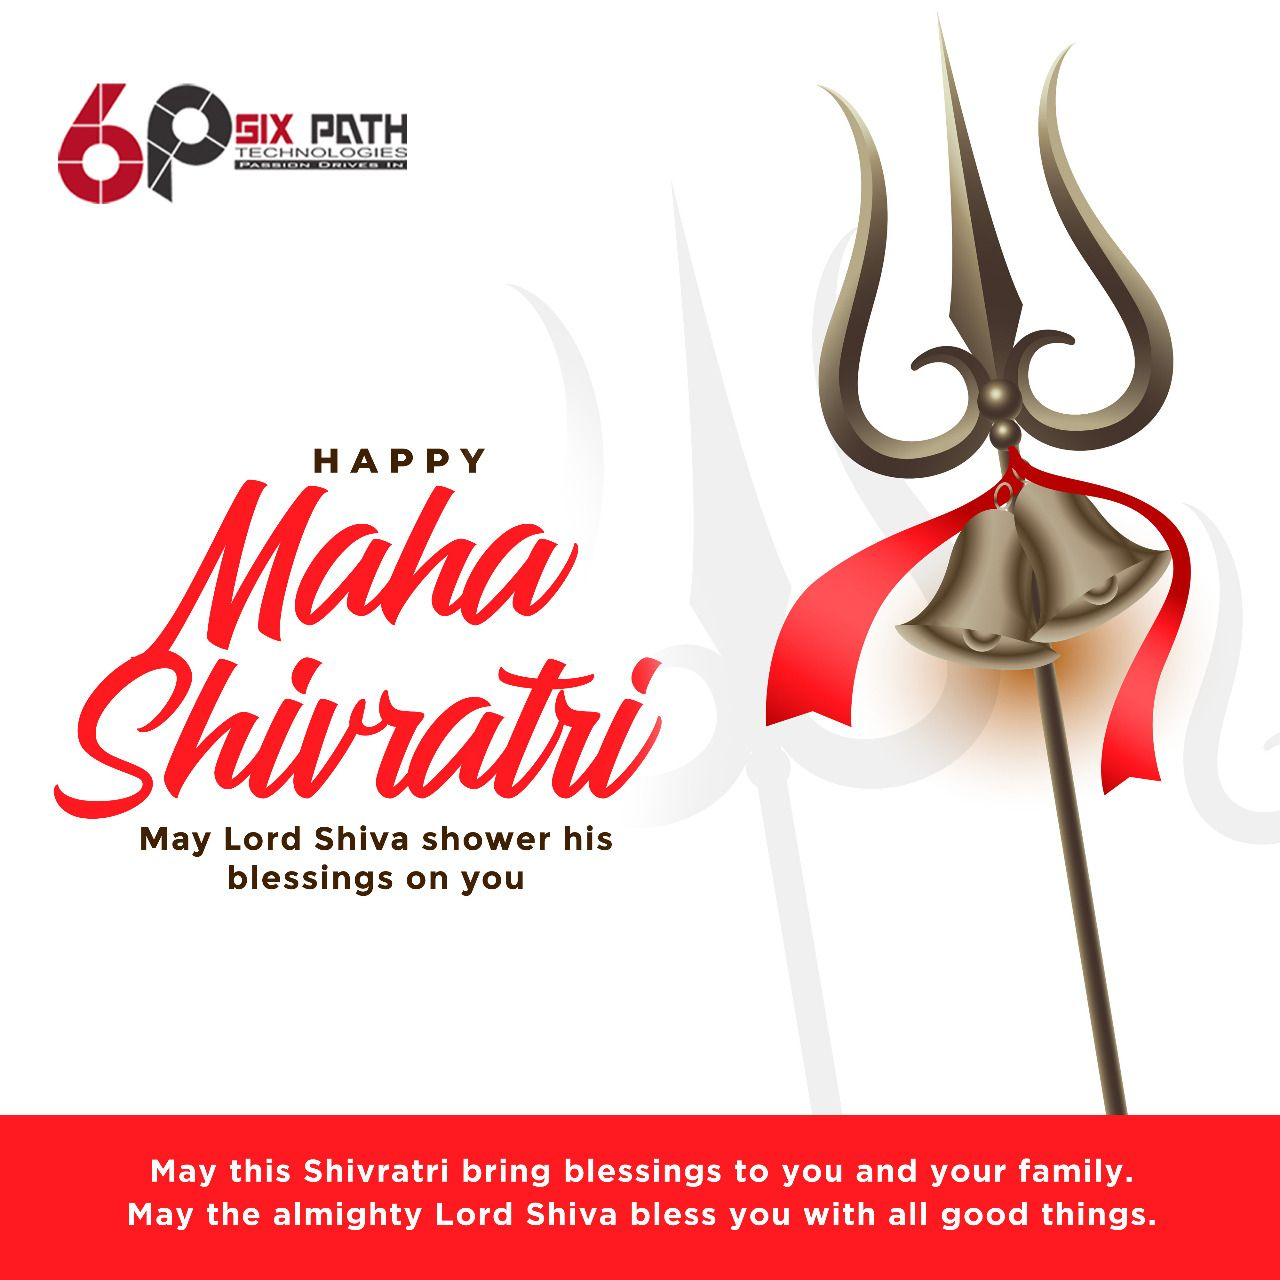 May the glory of the divine Shiva, remind us of our